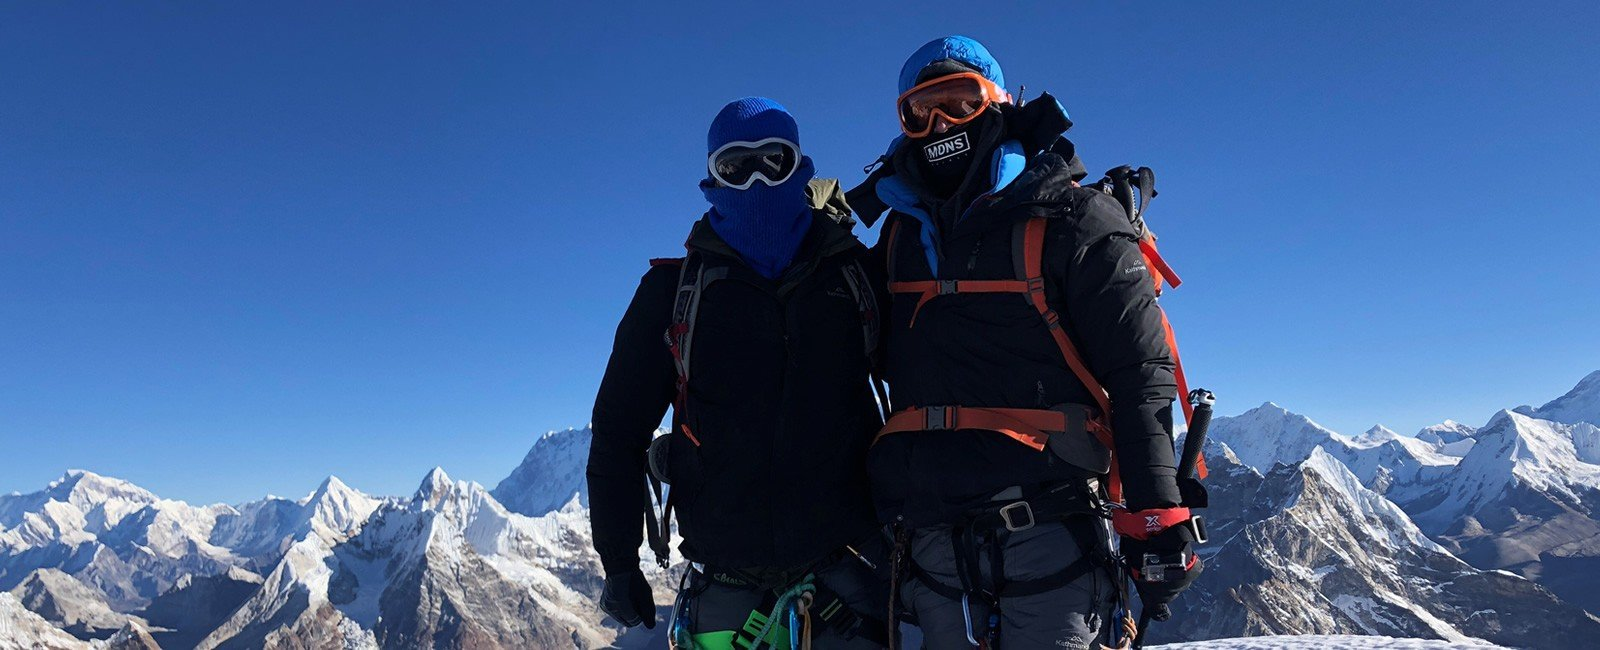 Mera peak trekking and climbing